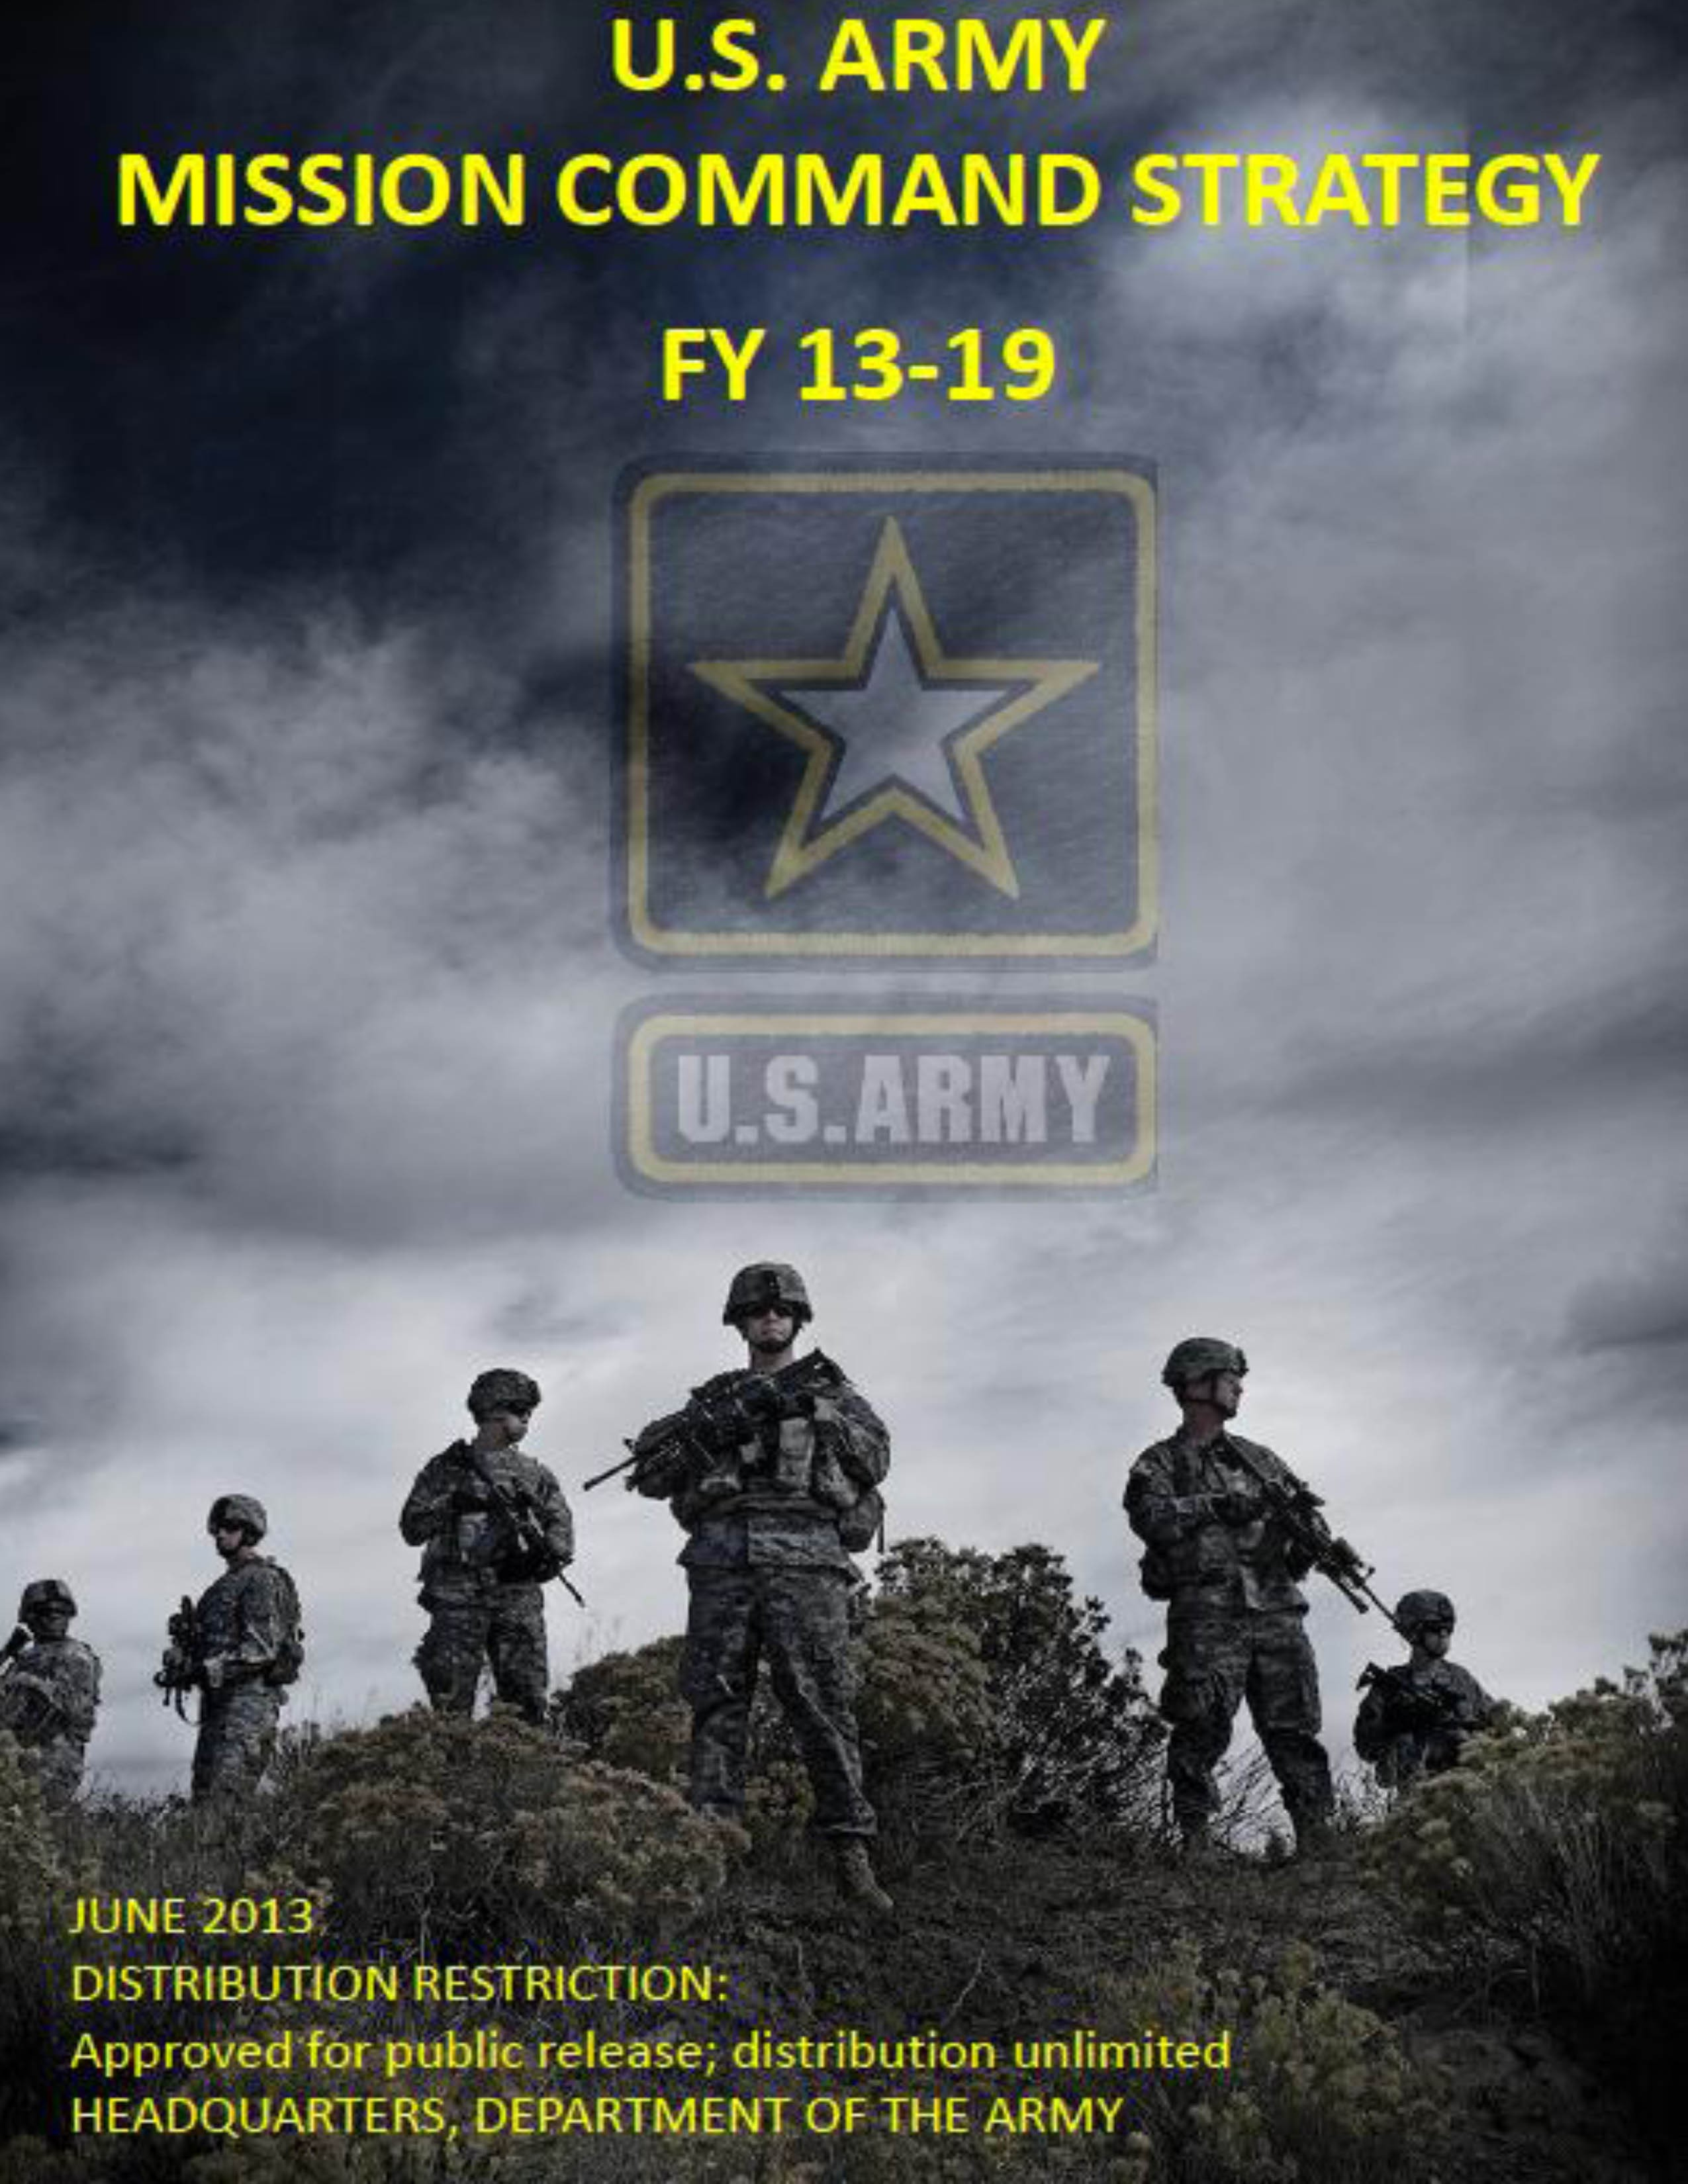 the united states military strategy essay -building and permanent alliances would allow us to plan for fewer military actions and cut the size and cost of the military this strategy allows nearly one trillion dollars in savings over ten years, as outlined in a recent essay 17 united states should use its military to.